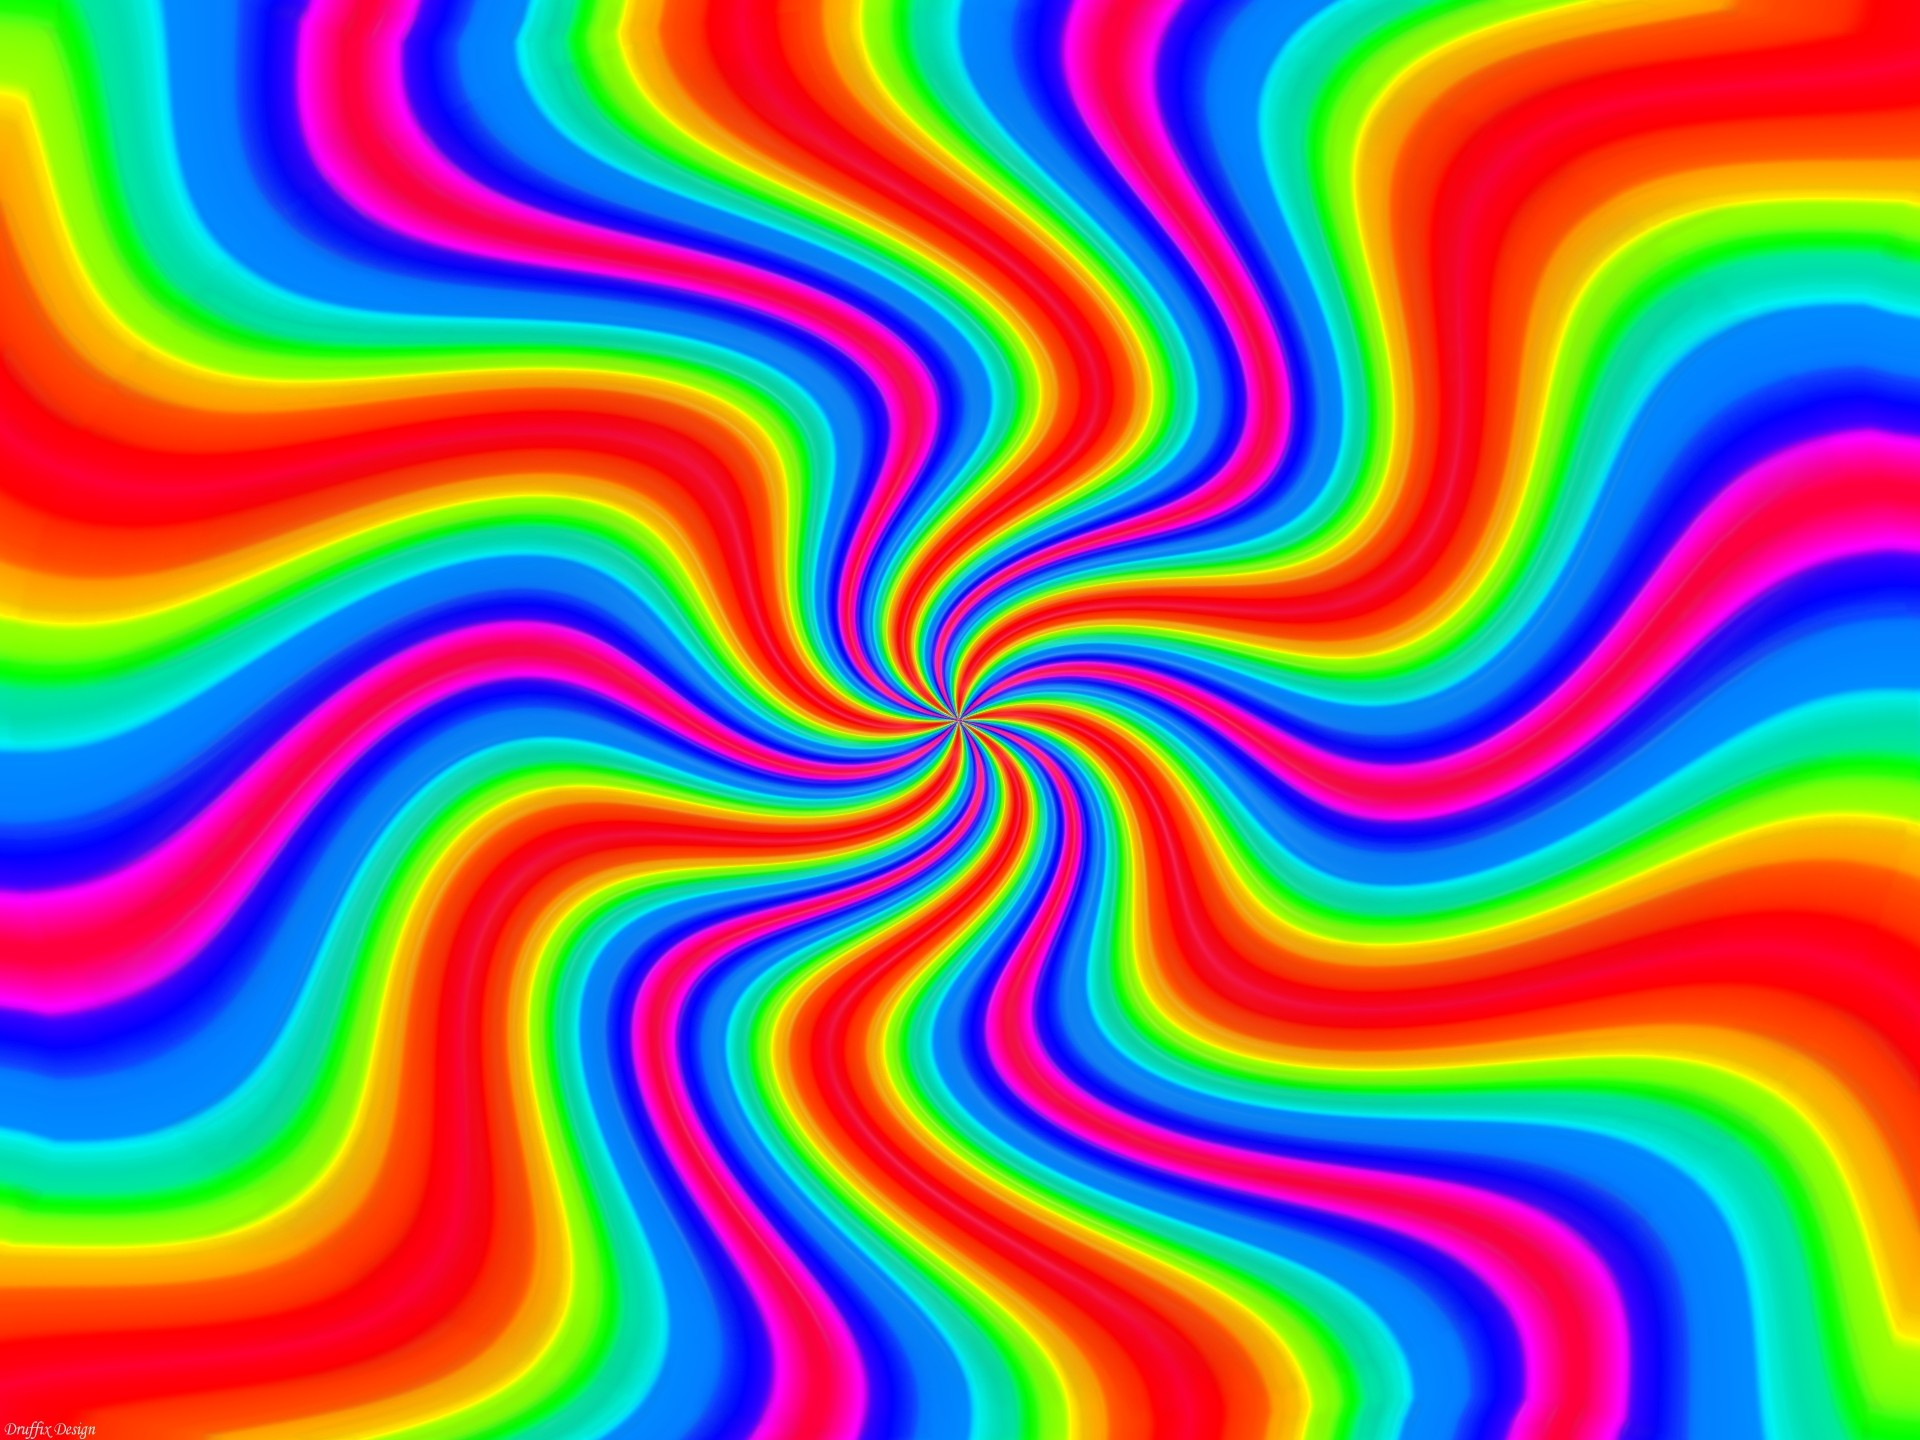 Wallpapers Rainbows Twister Rainbow Abstract Art Chaos Colors .